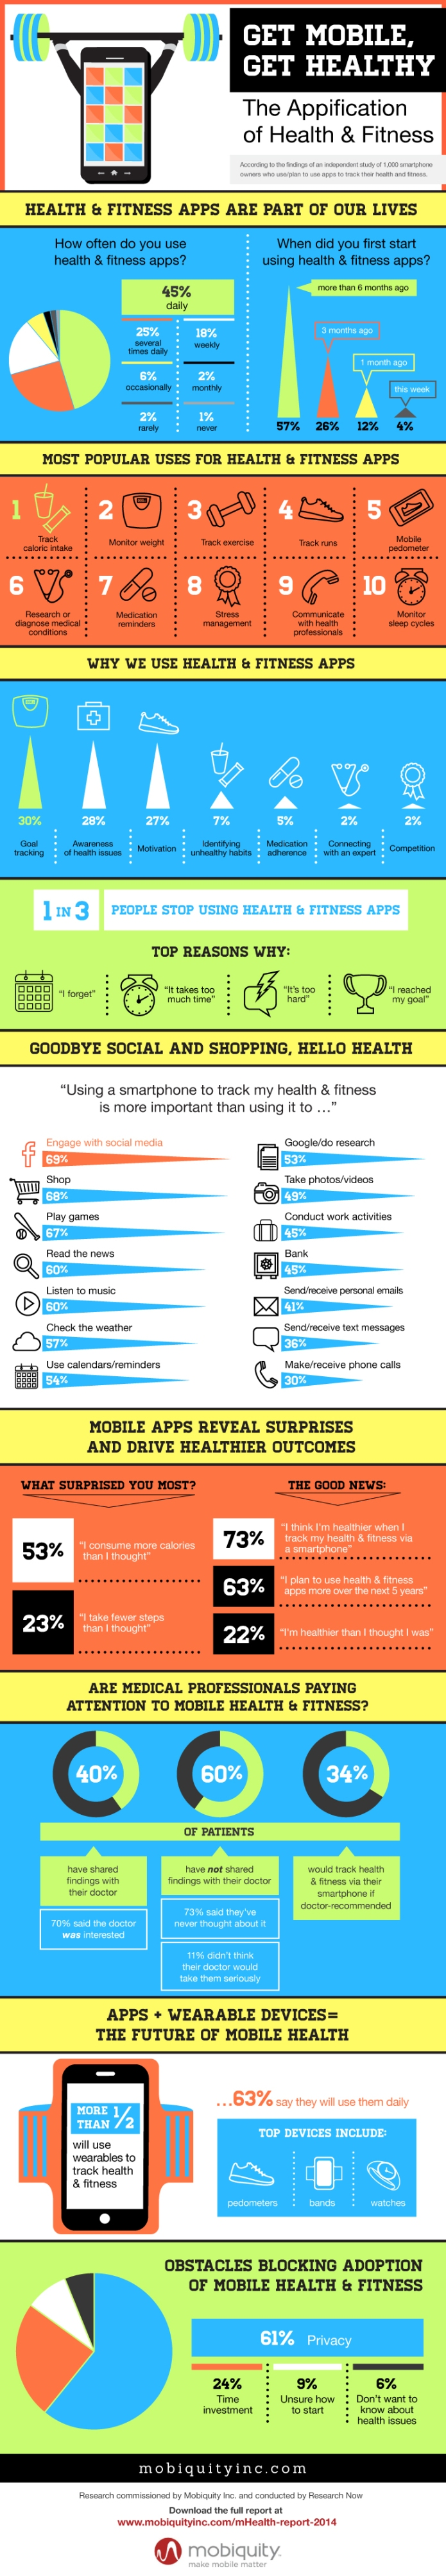 mobiquity_mhealth_final (1)